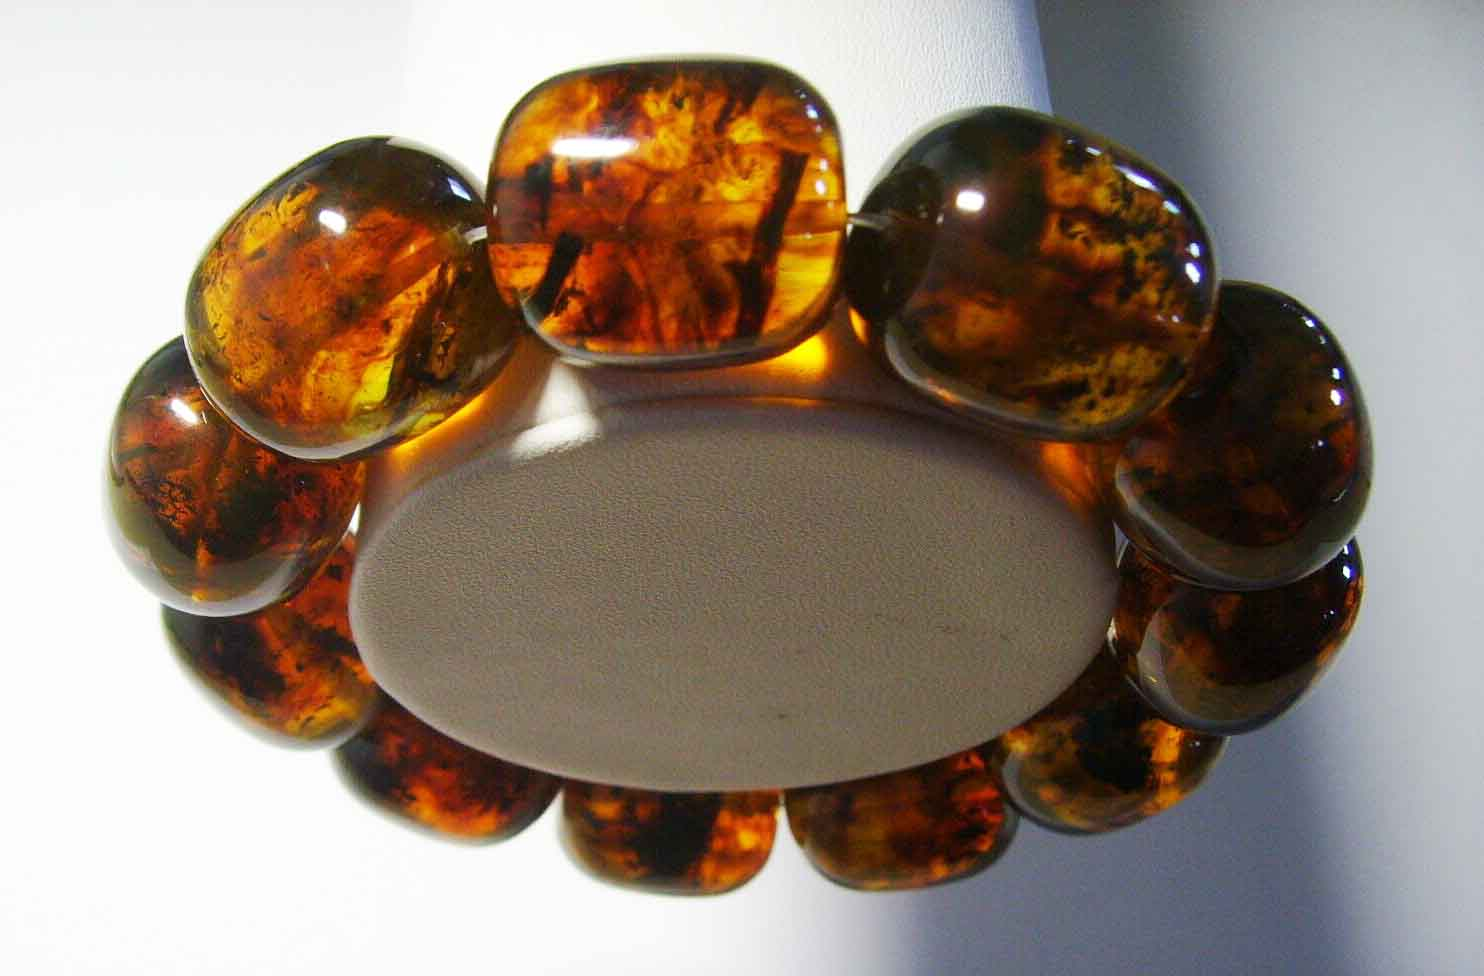 Gift For Husband Unique Vintage Gift For Dad 461 Old Amber Cuff-links Natural Amber Stone Jewelry For Men Genuine Baltic Amber